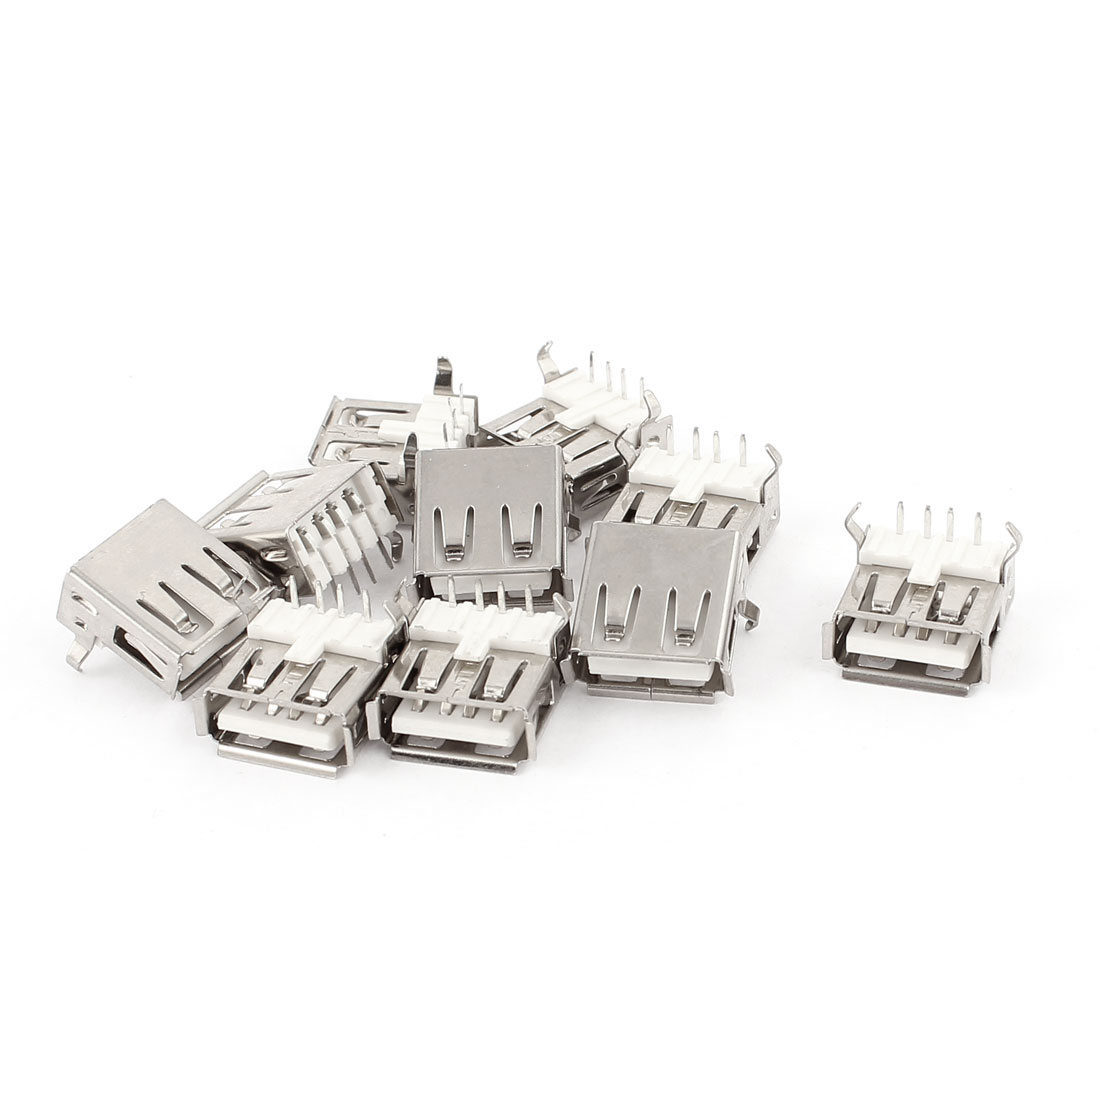 10PCS 4-Pin PCB Mount USB Type A Female Socket Jack Connector